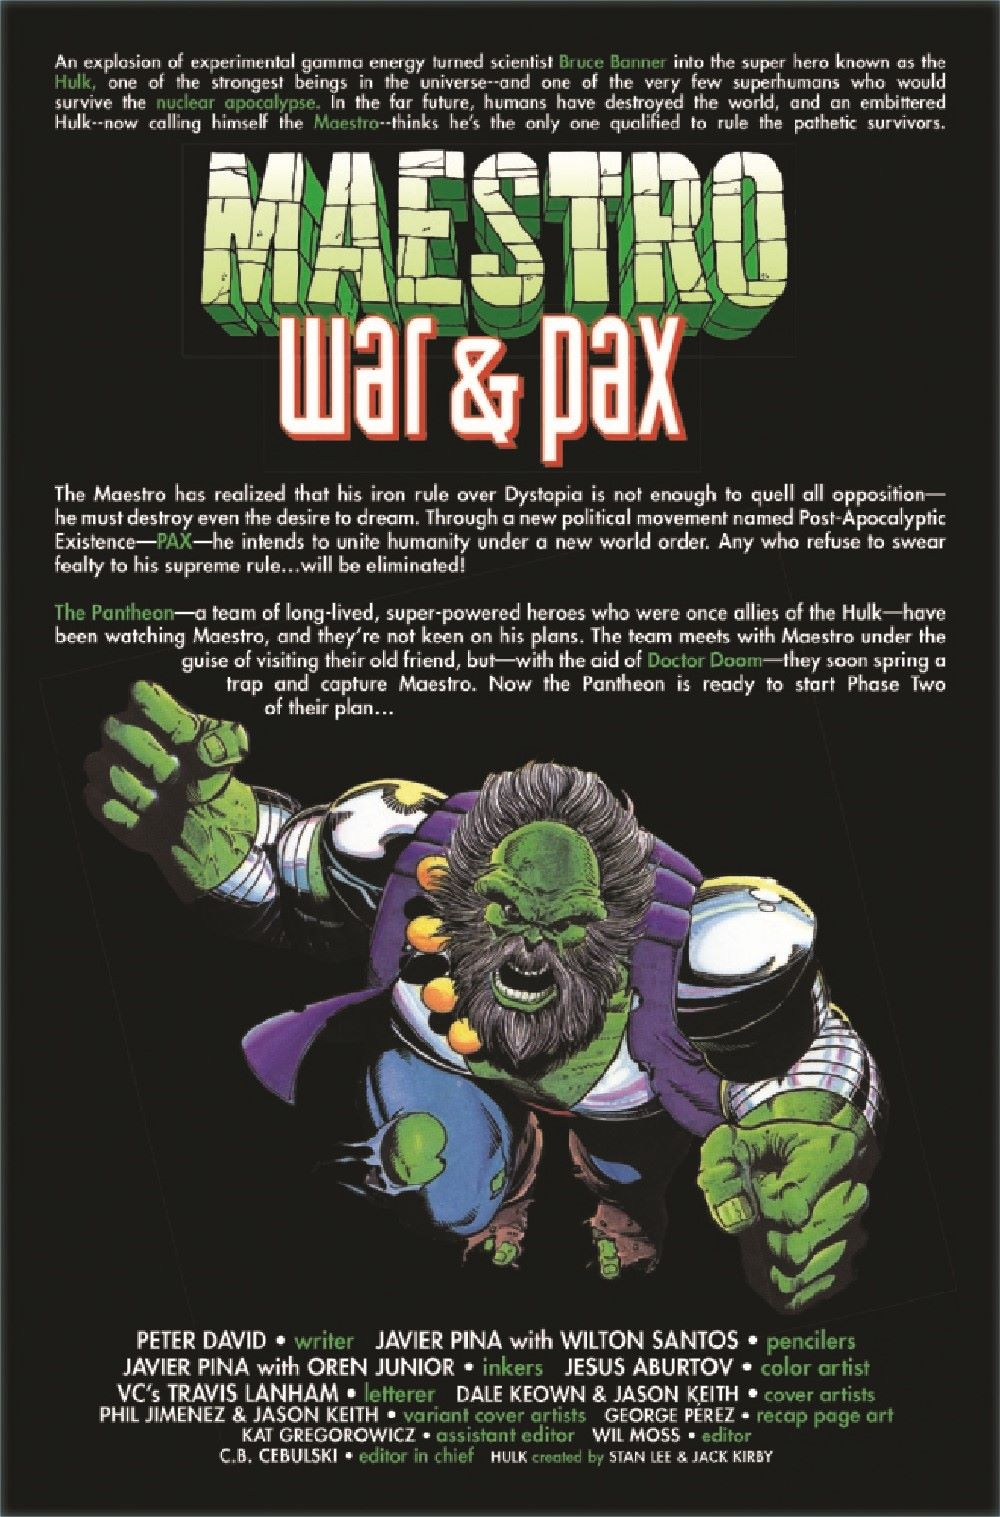 MAESTROWAP2021003_Preview-2 ComicList Previews: MAESTRO WAR AND PAX #3 (OF 5)